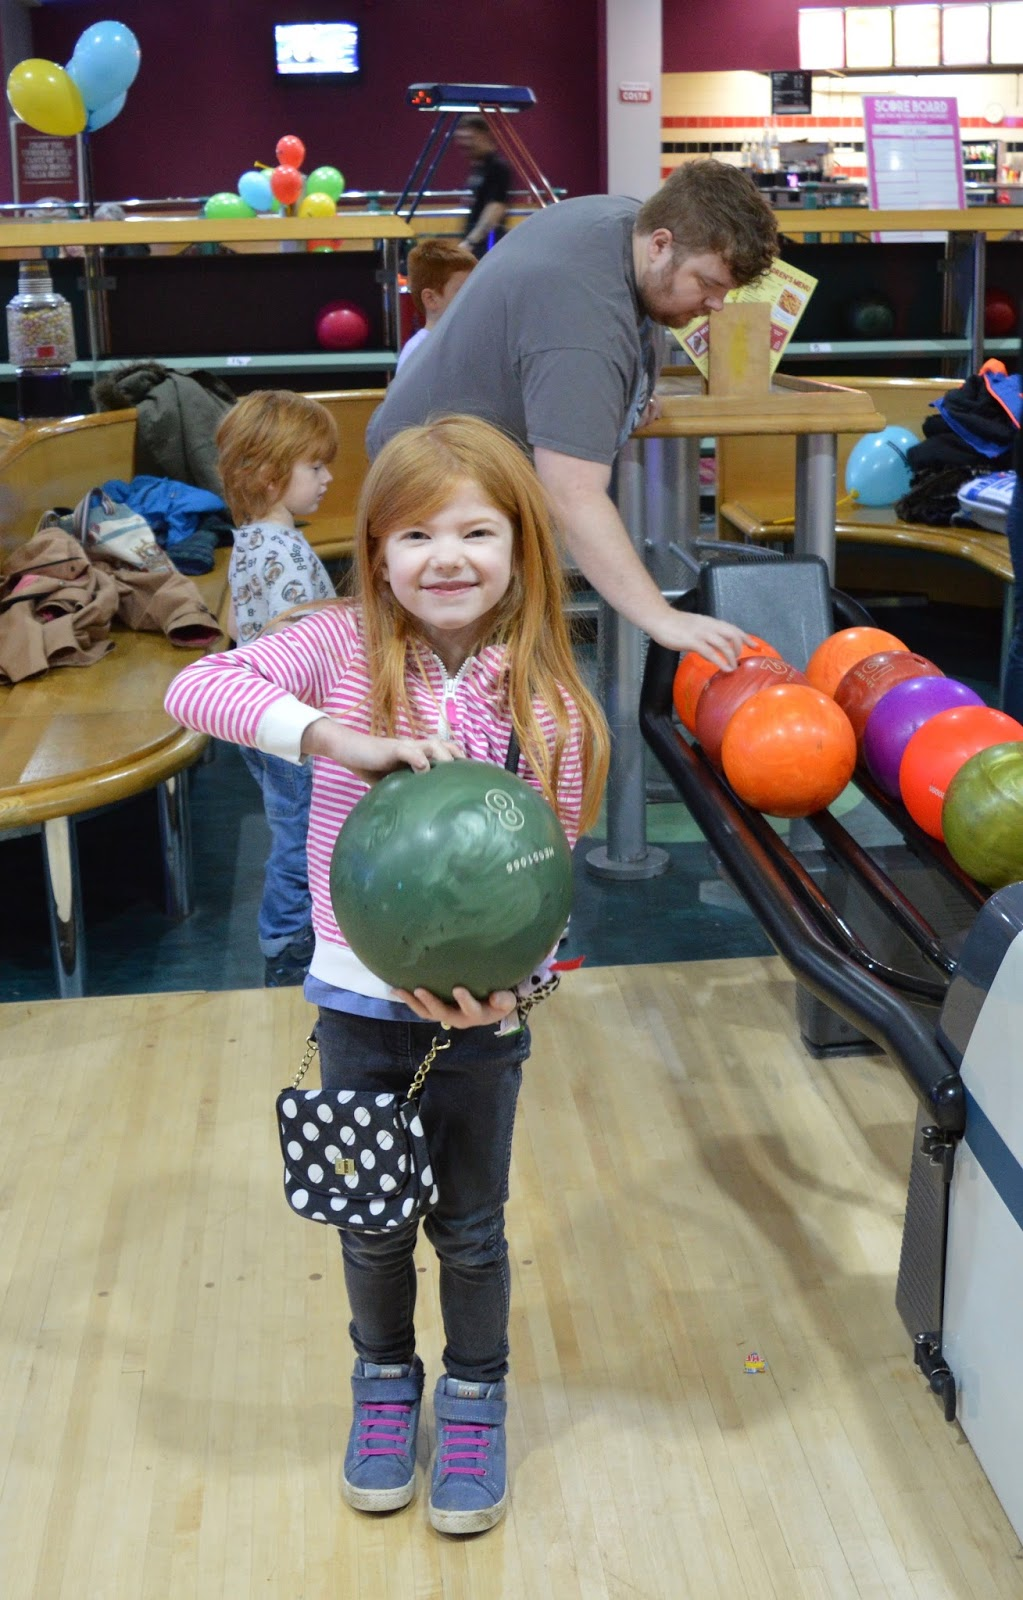 A Guide to The Best Family Days Out in the North East including AMF Bowling Washington